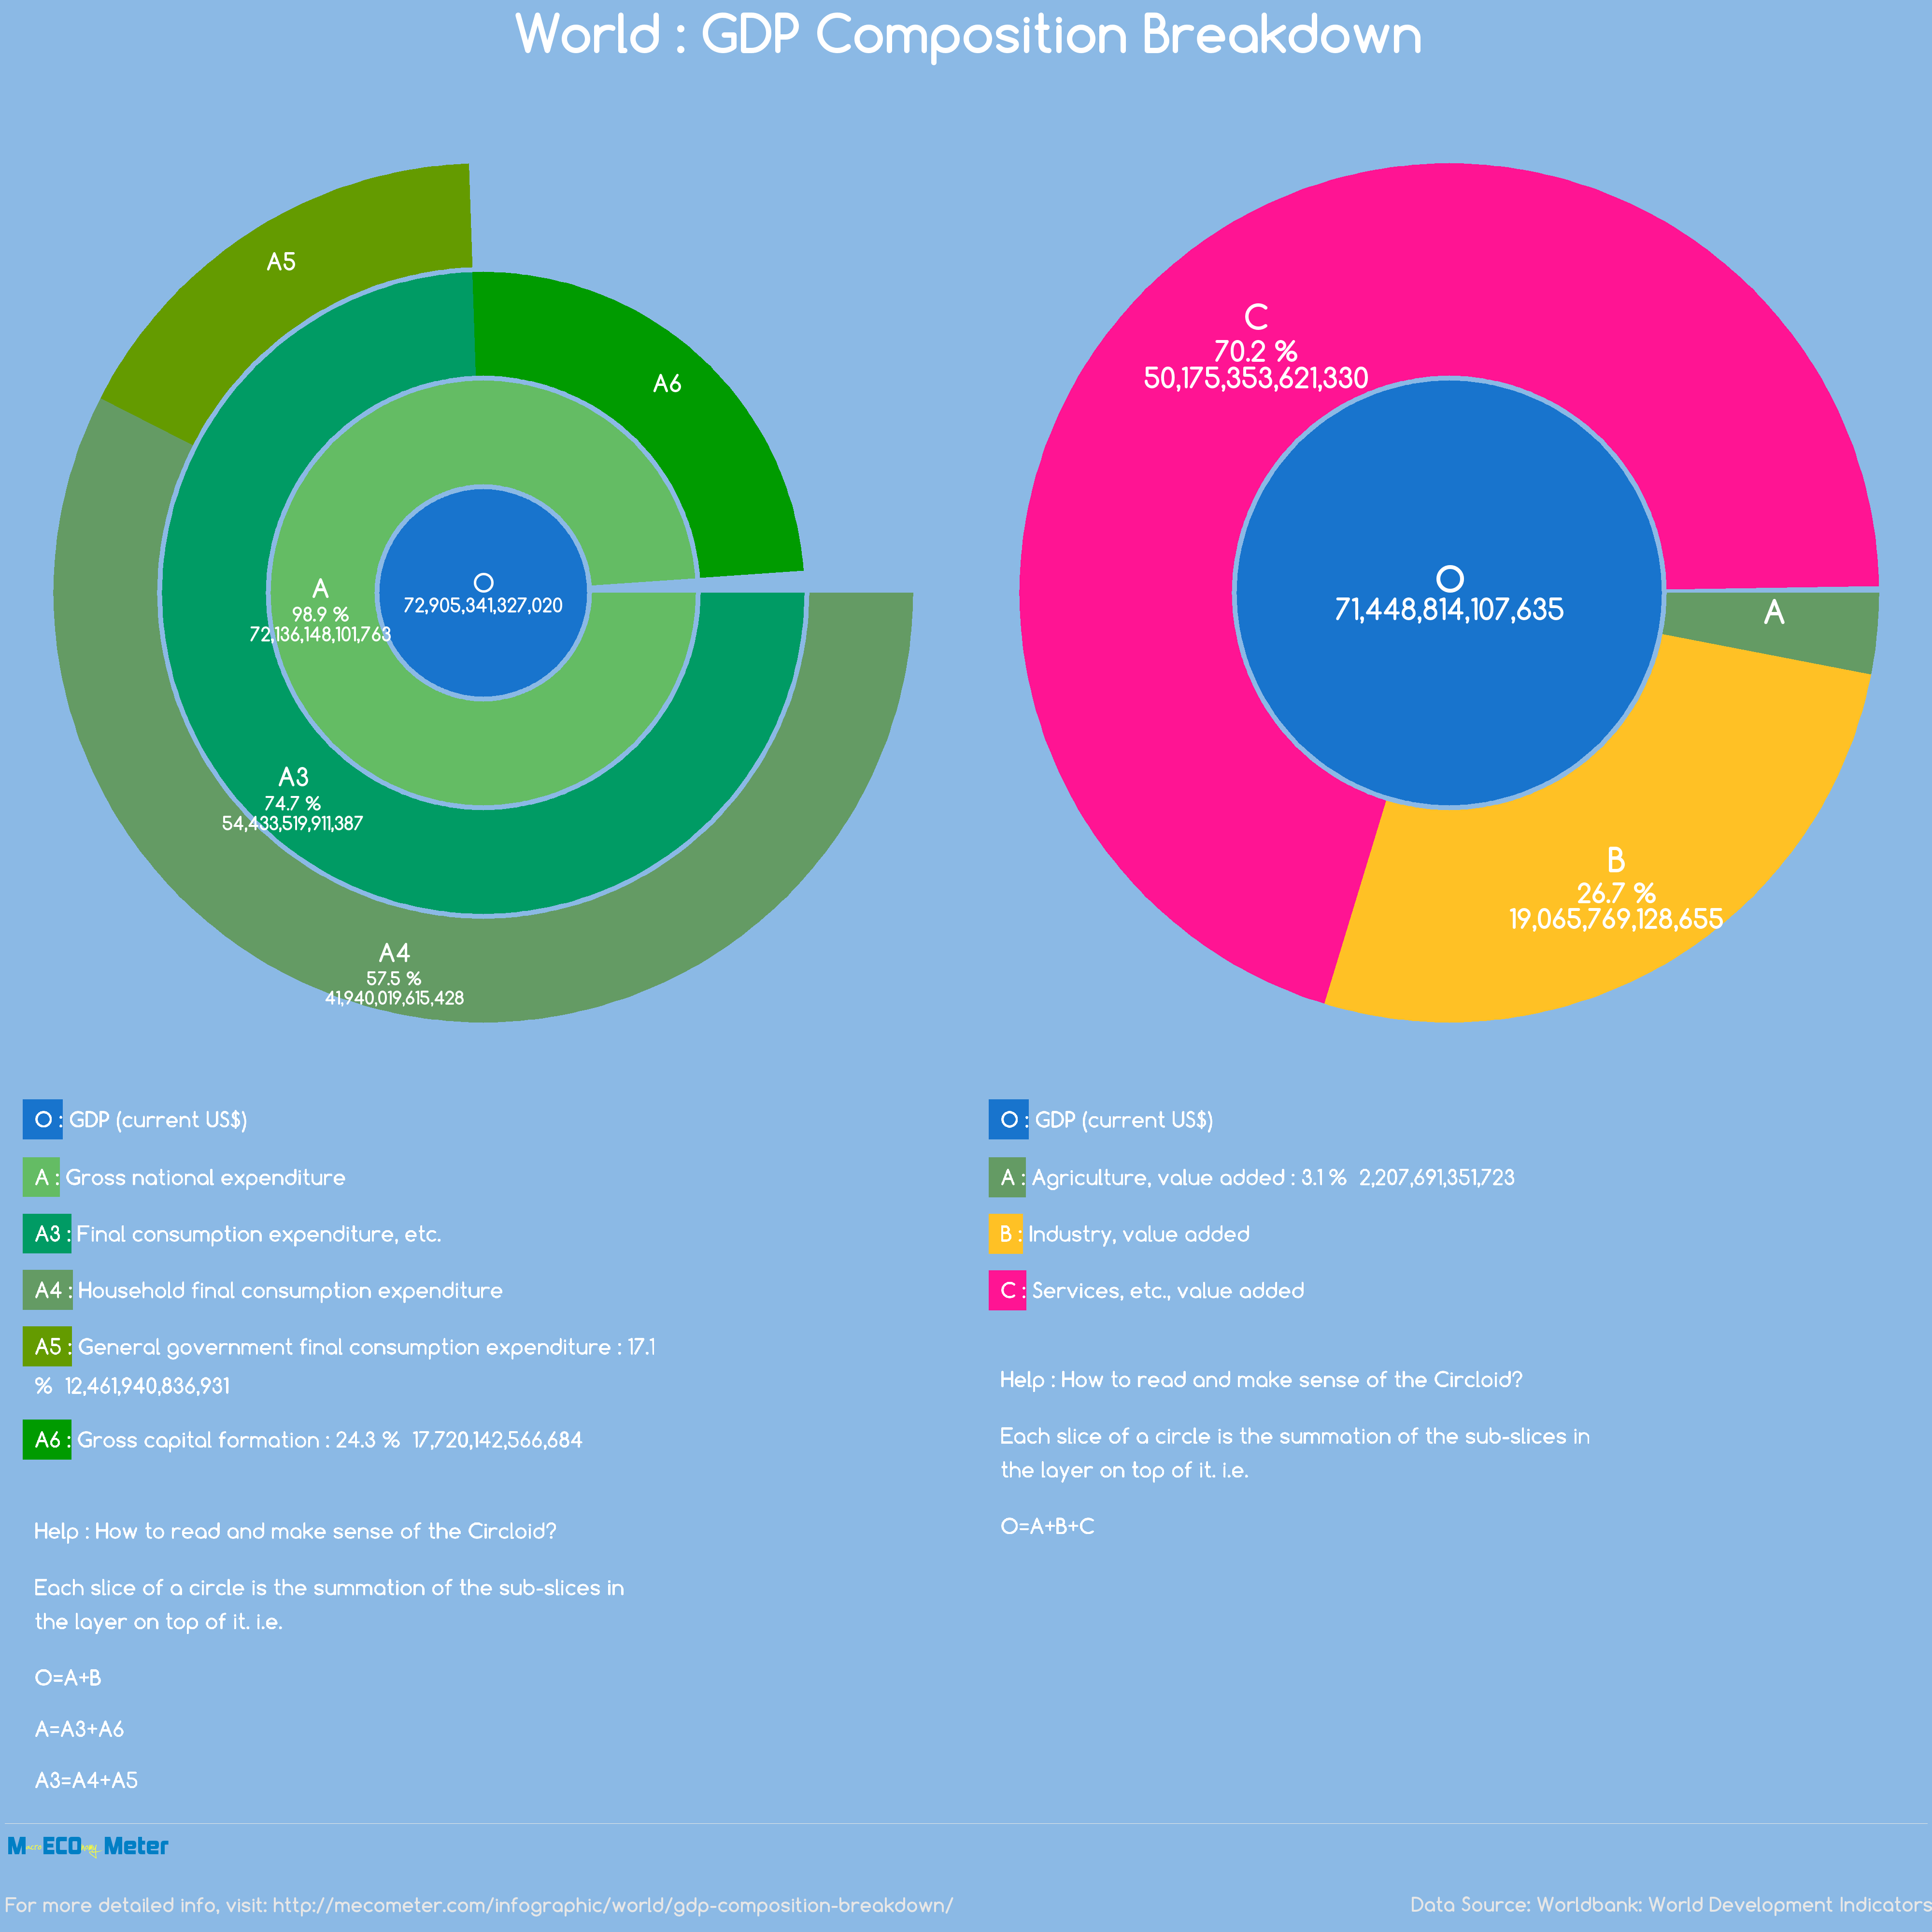 World : GDP Composition Breakdown